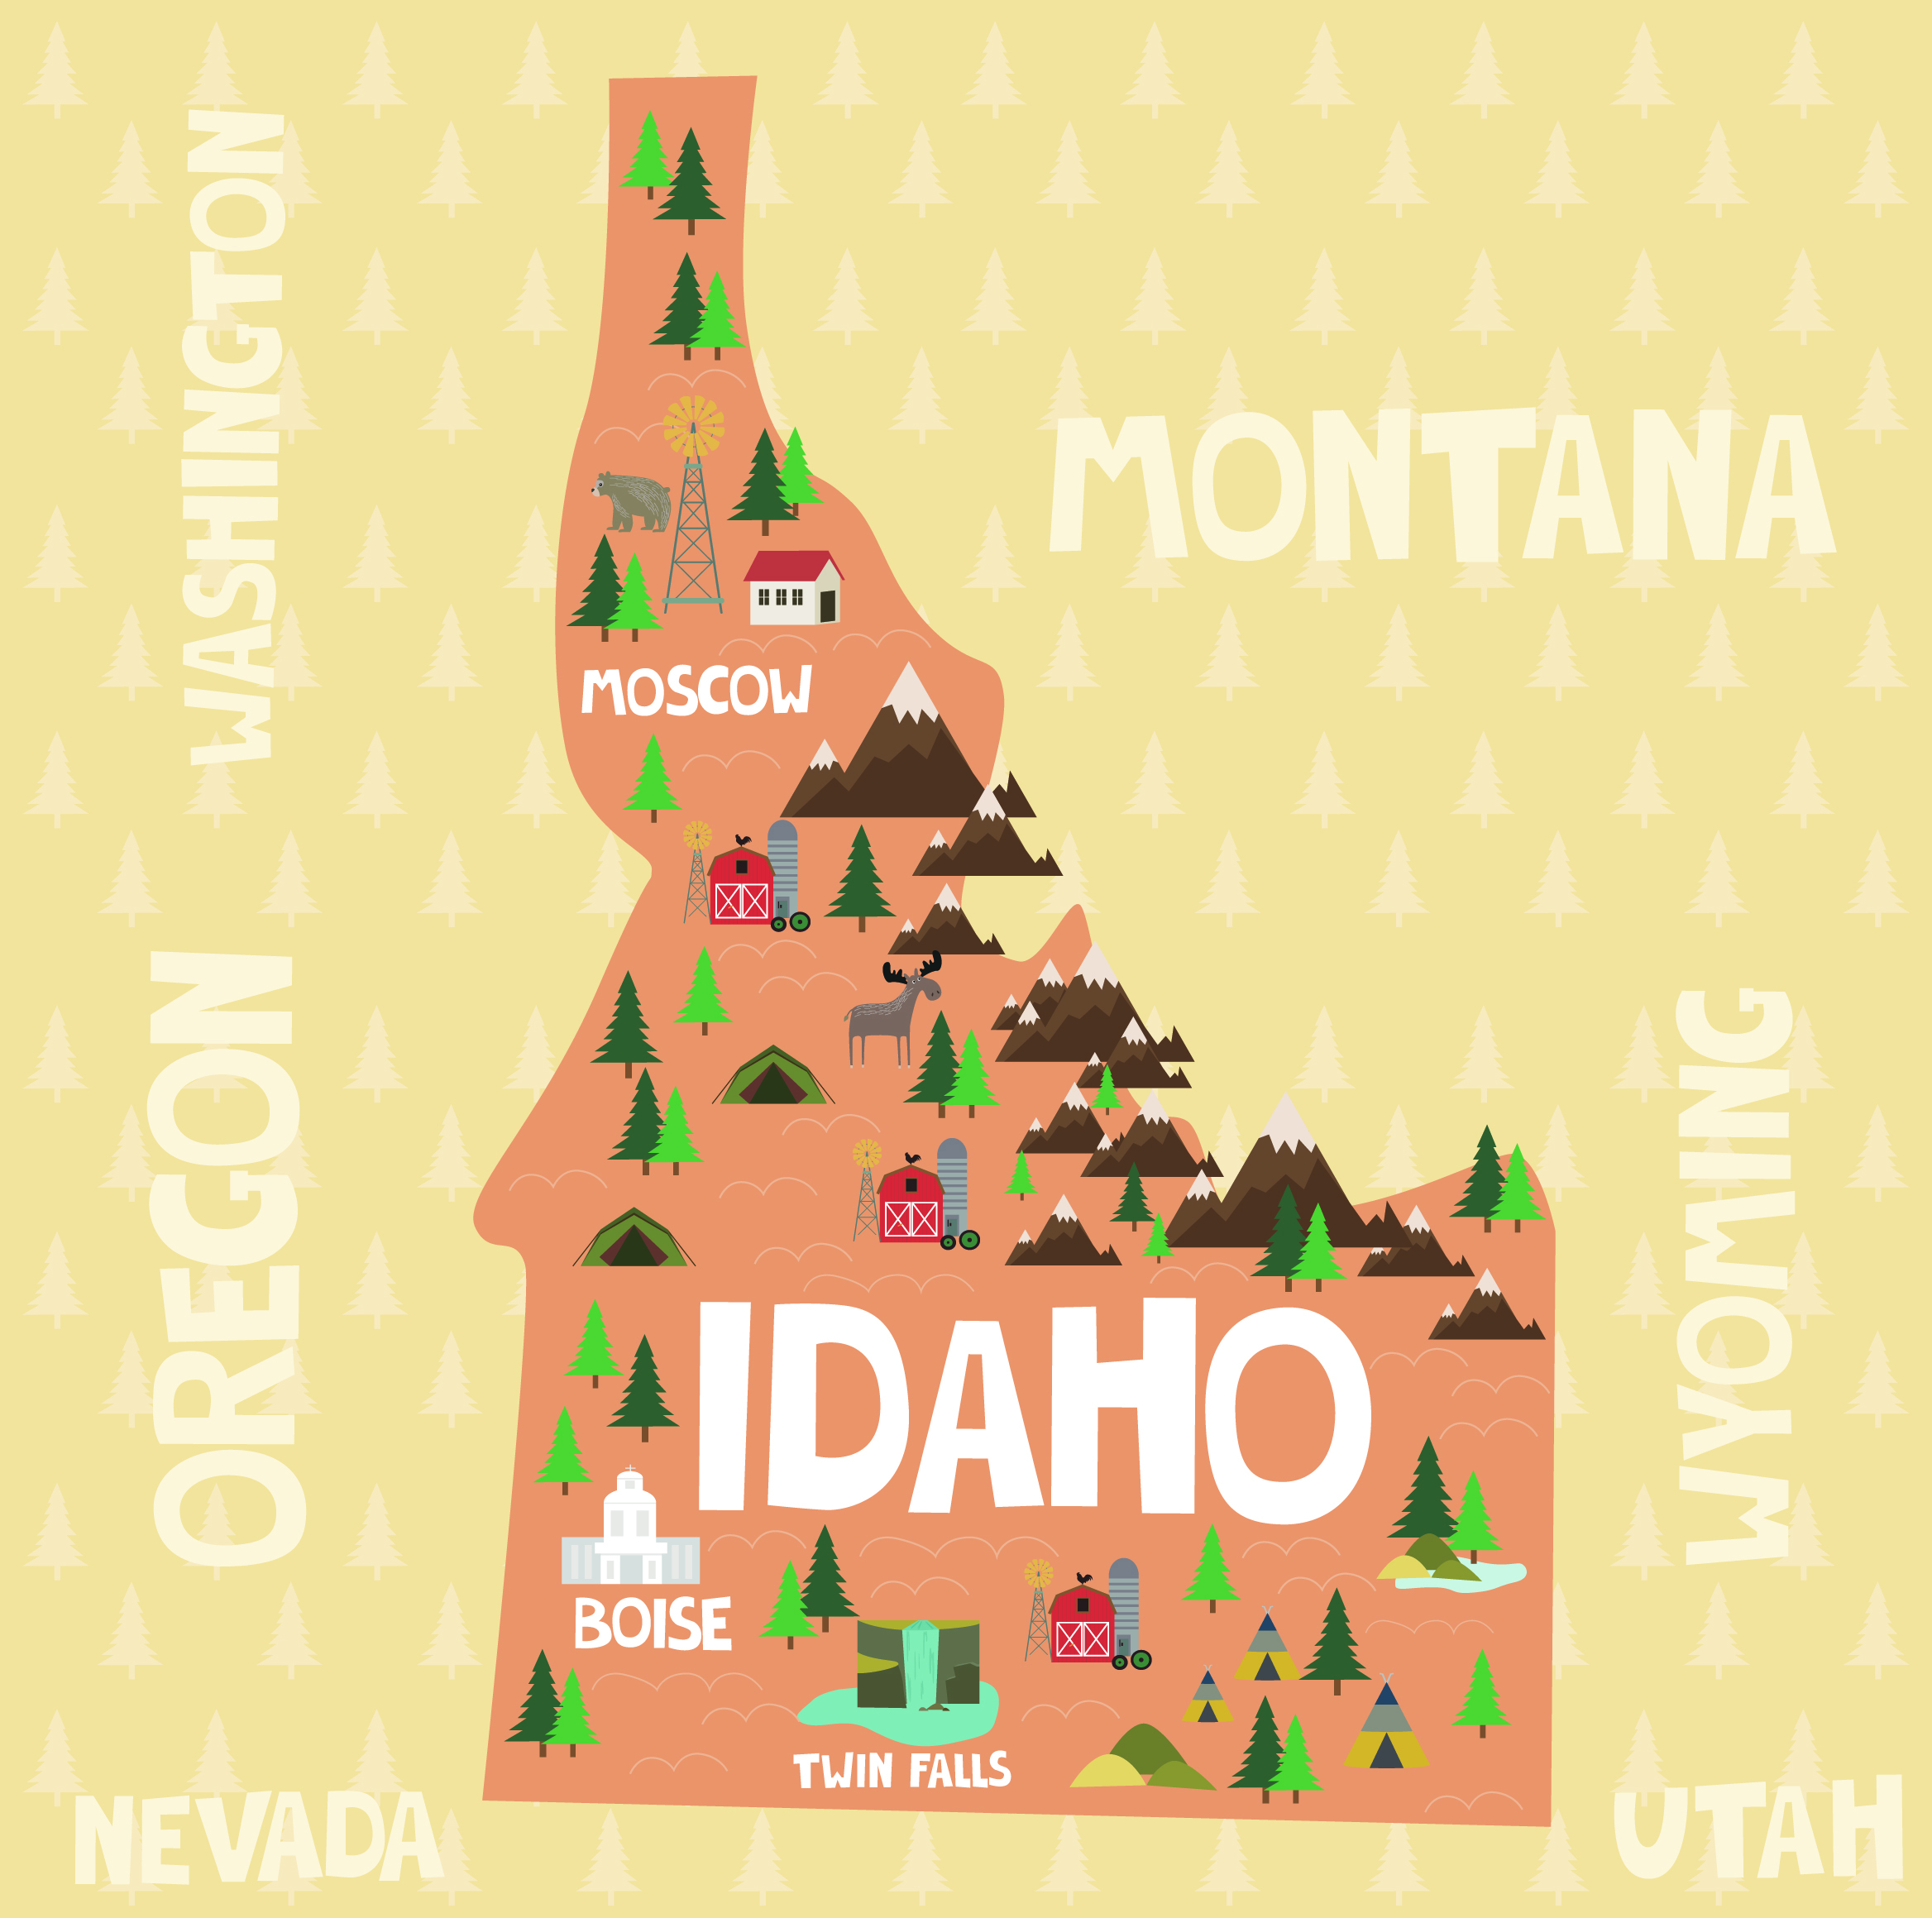 Idaho Road Trip Cartoon Map